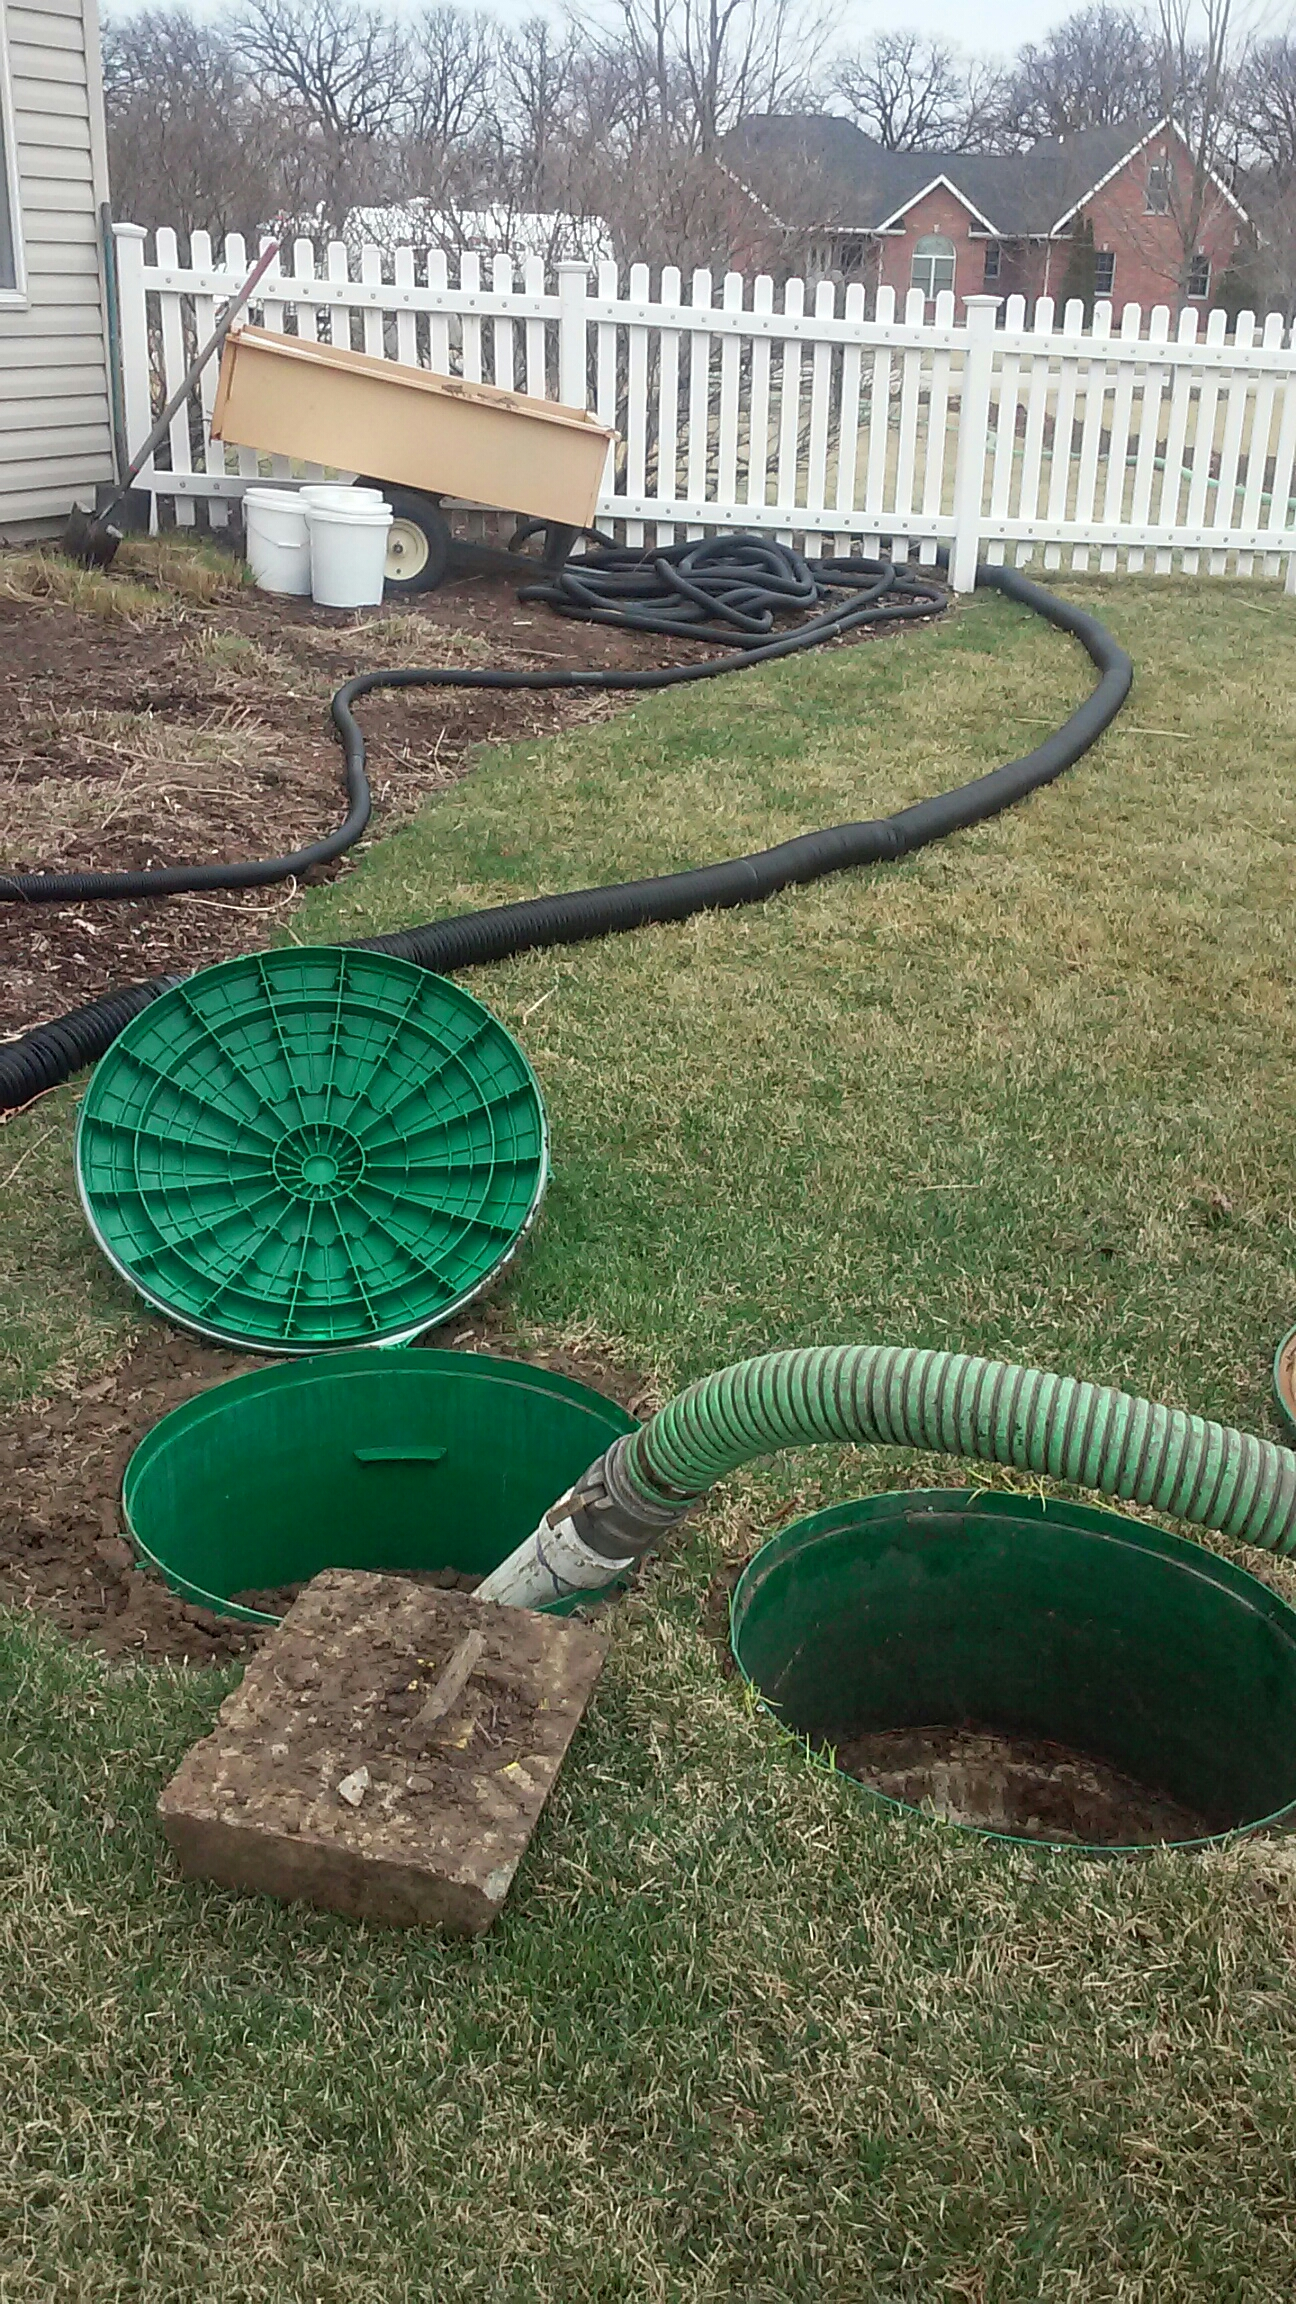 Sandwich, IL - Pumping and cleaning septic tank